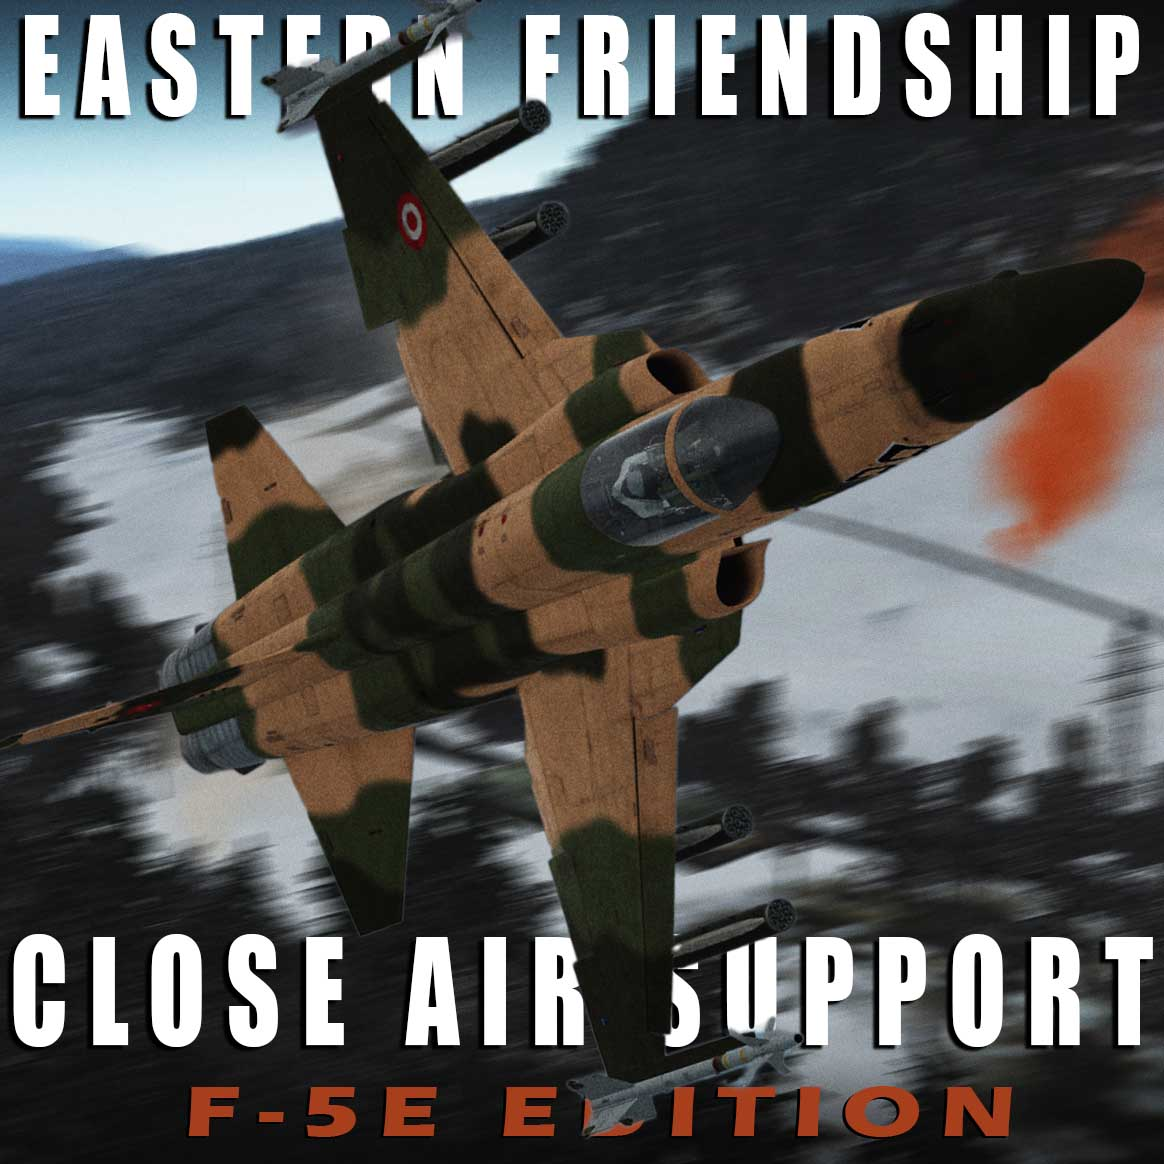 Eastern Friendship Mission 1 - Close Air Support F-5E Edition (version 1.0, uploaded March 6, 2021)